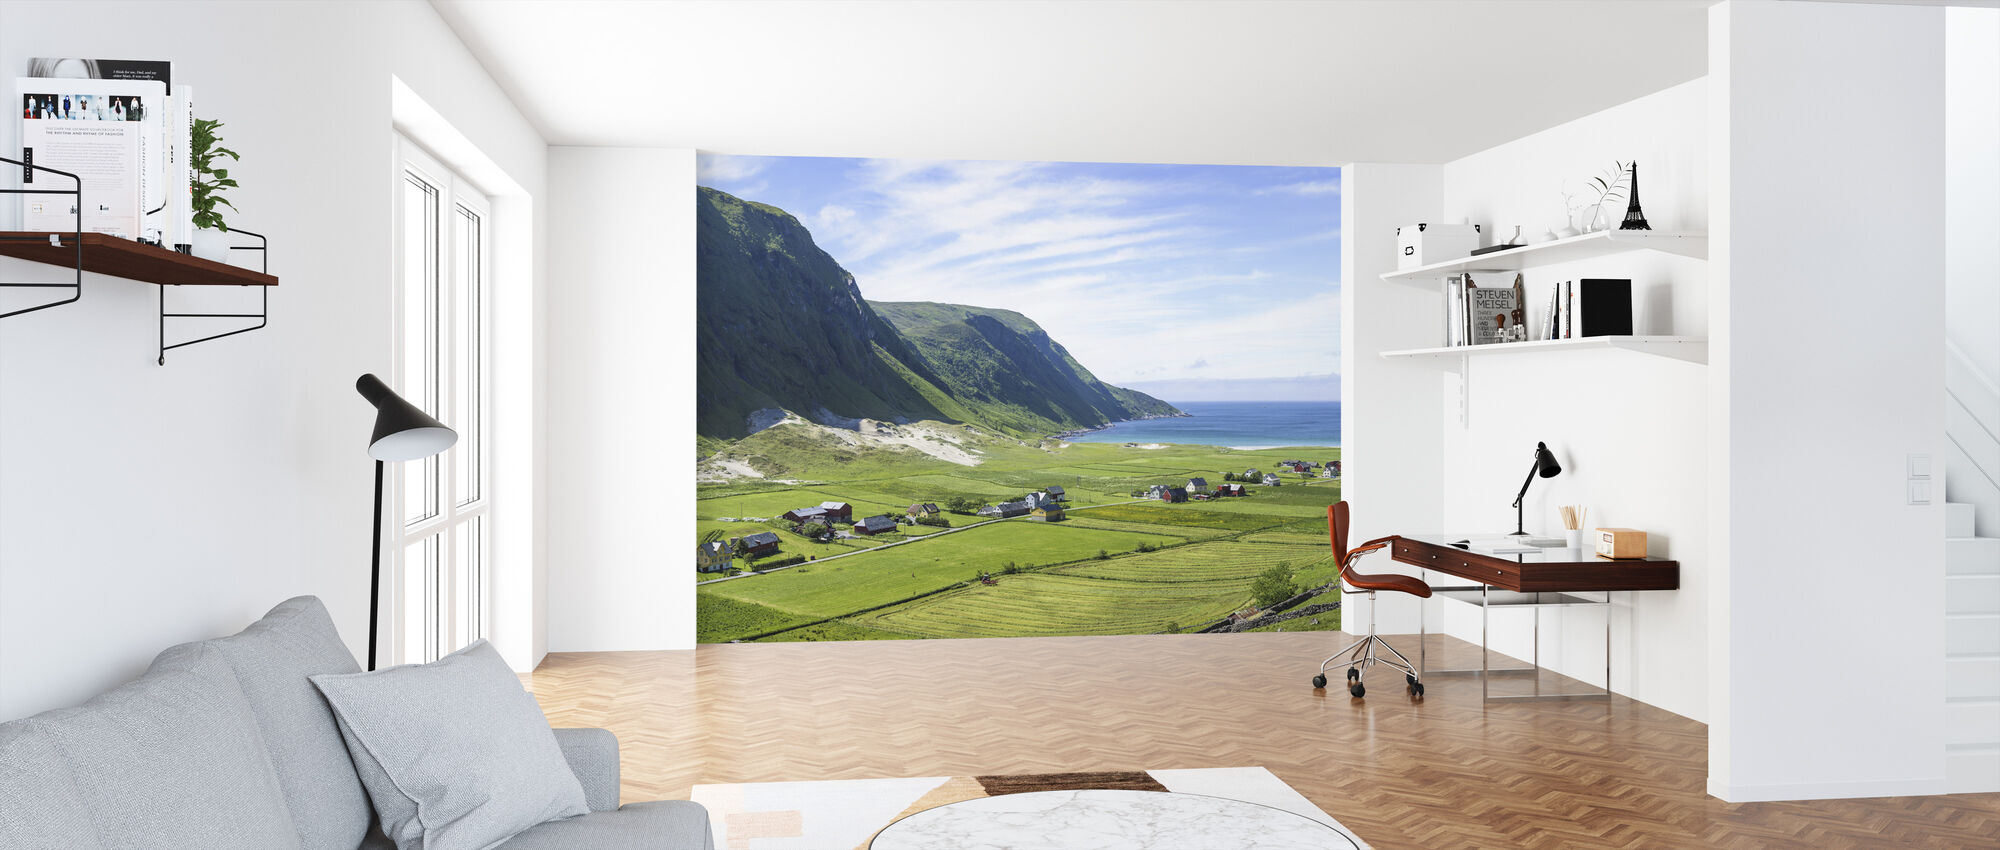 Buildings Among Green Fields, Norway - Wallpaper - Office